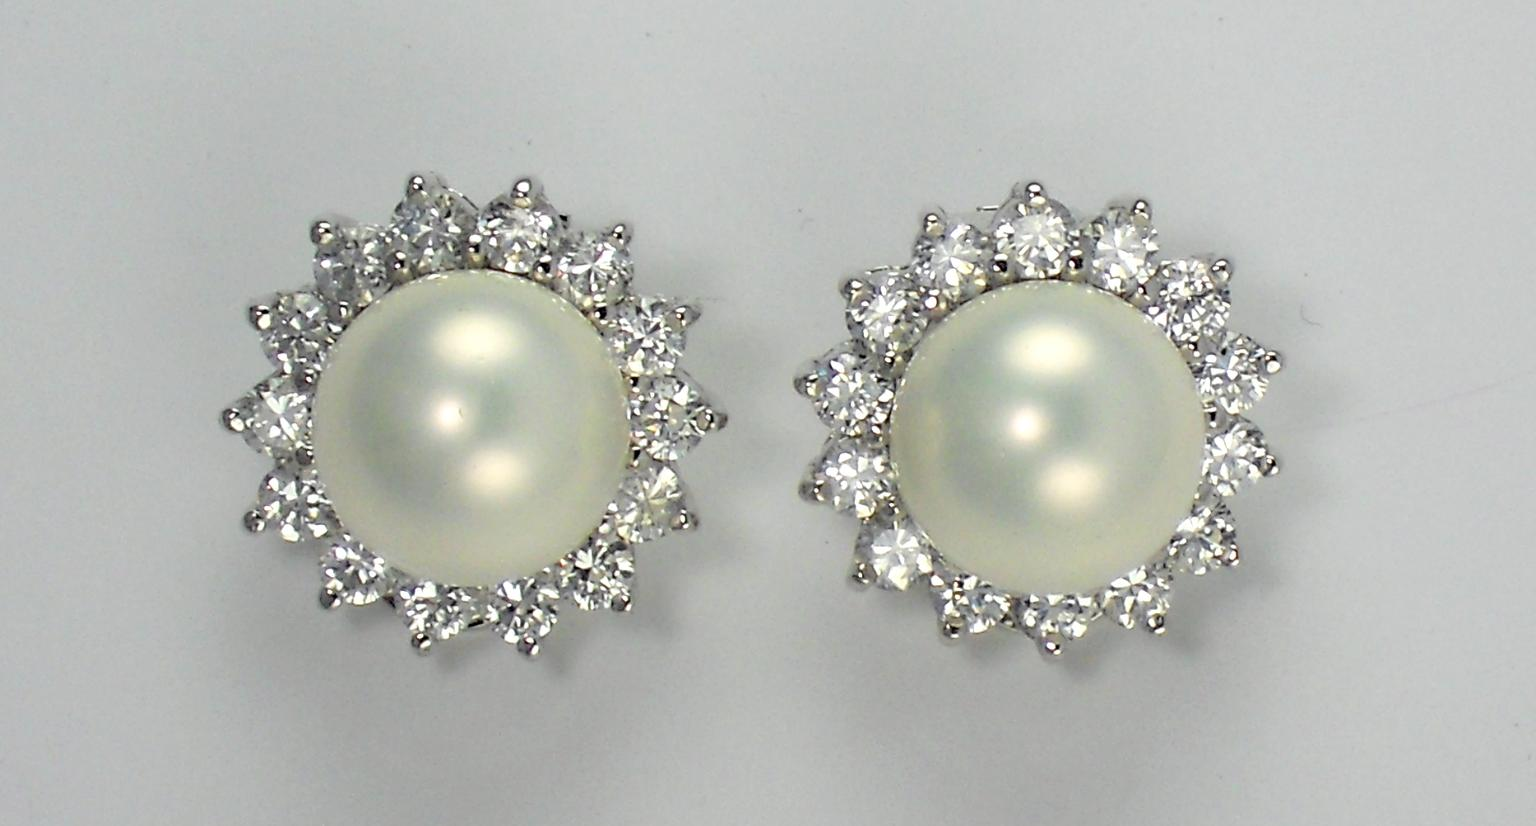 CIRO. Sterling silver rhodium plated shell pearl earrings with brilliant cut cubic zirconia stones.jpg